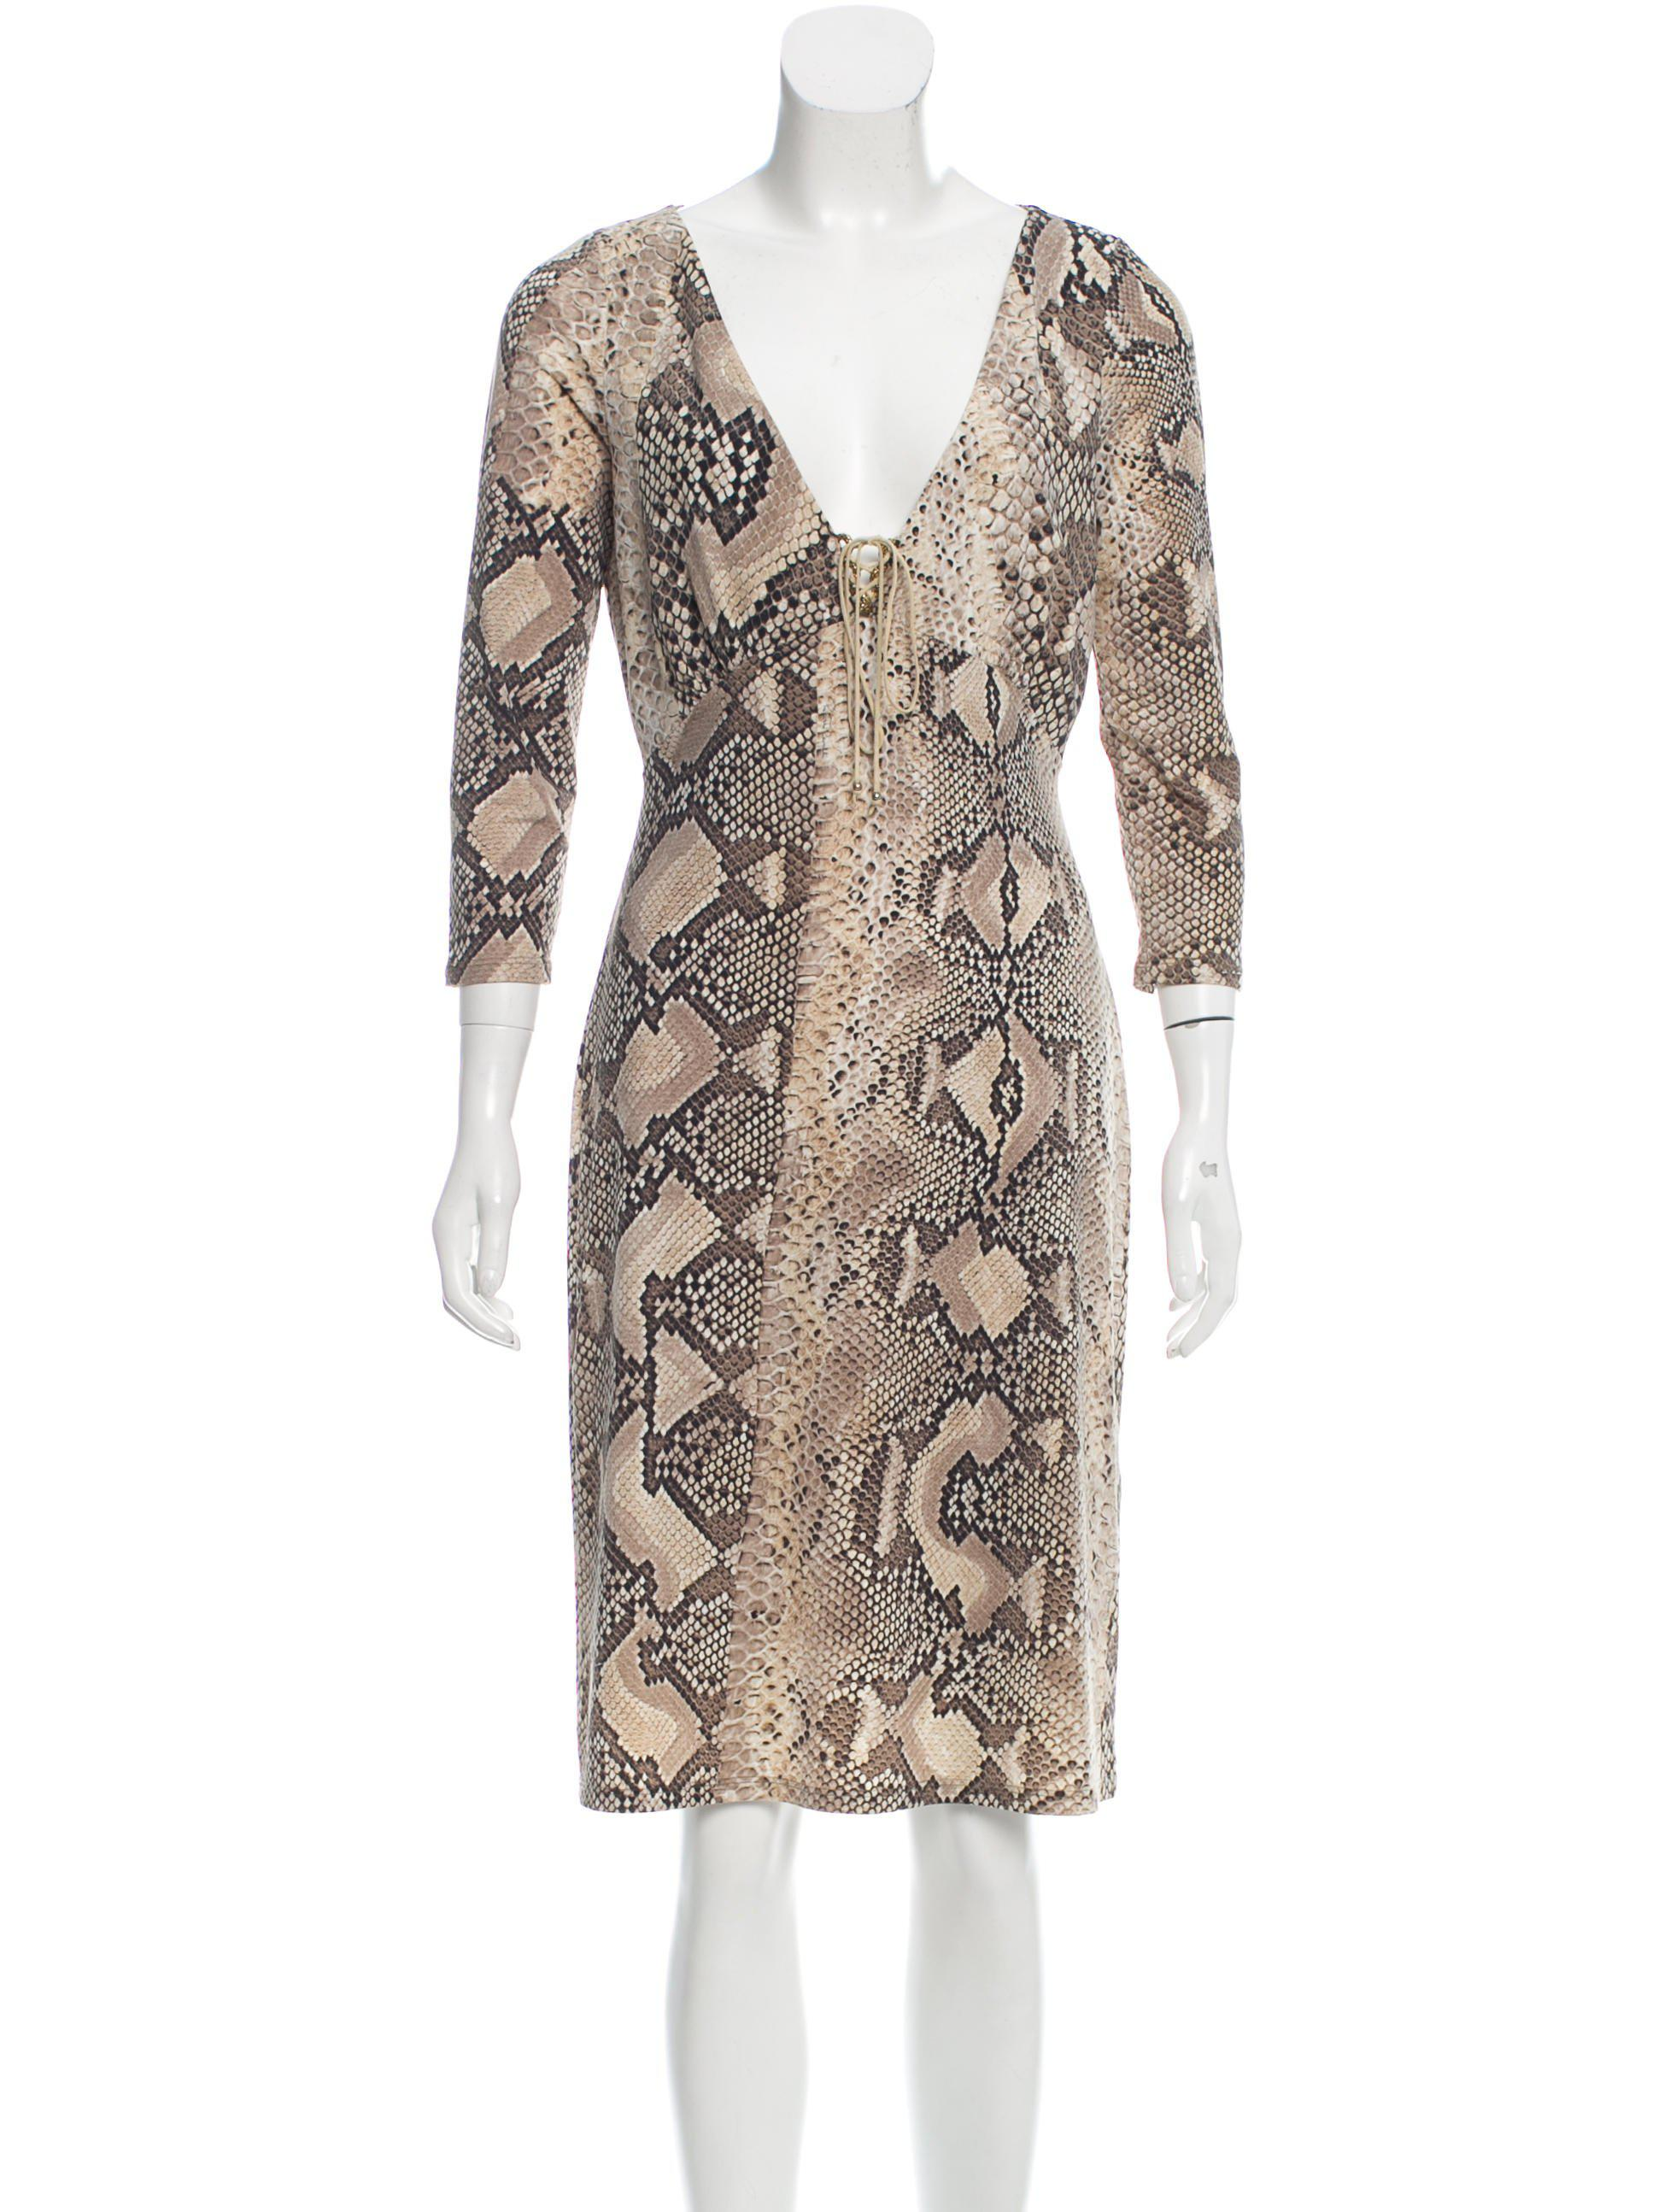 a7bc69f6ec3 Lyst - Roberto Cavalli Snakeskin Print Lace-up Dress in Brown